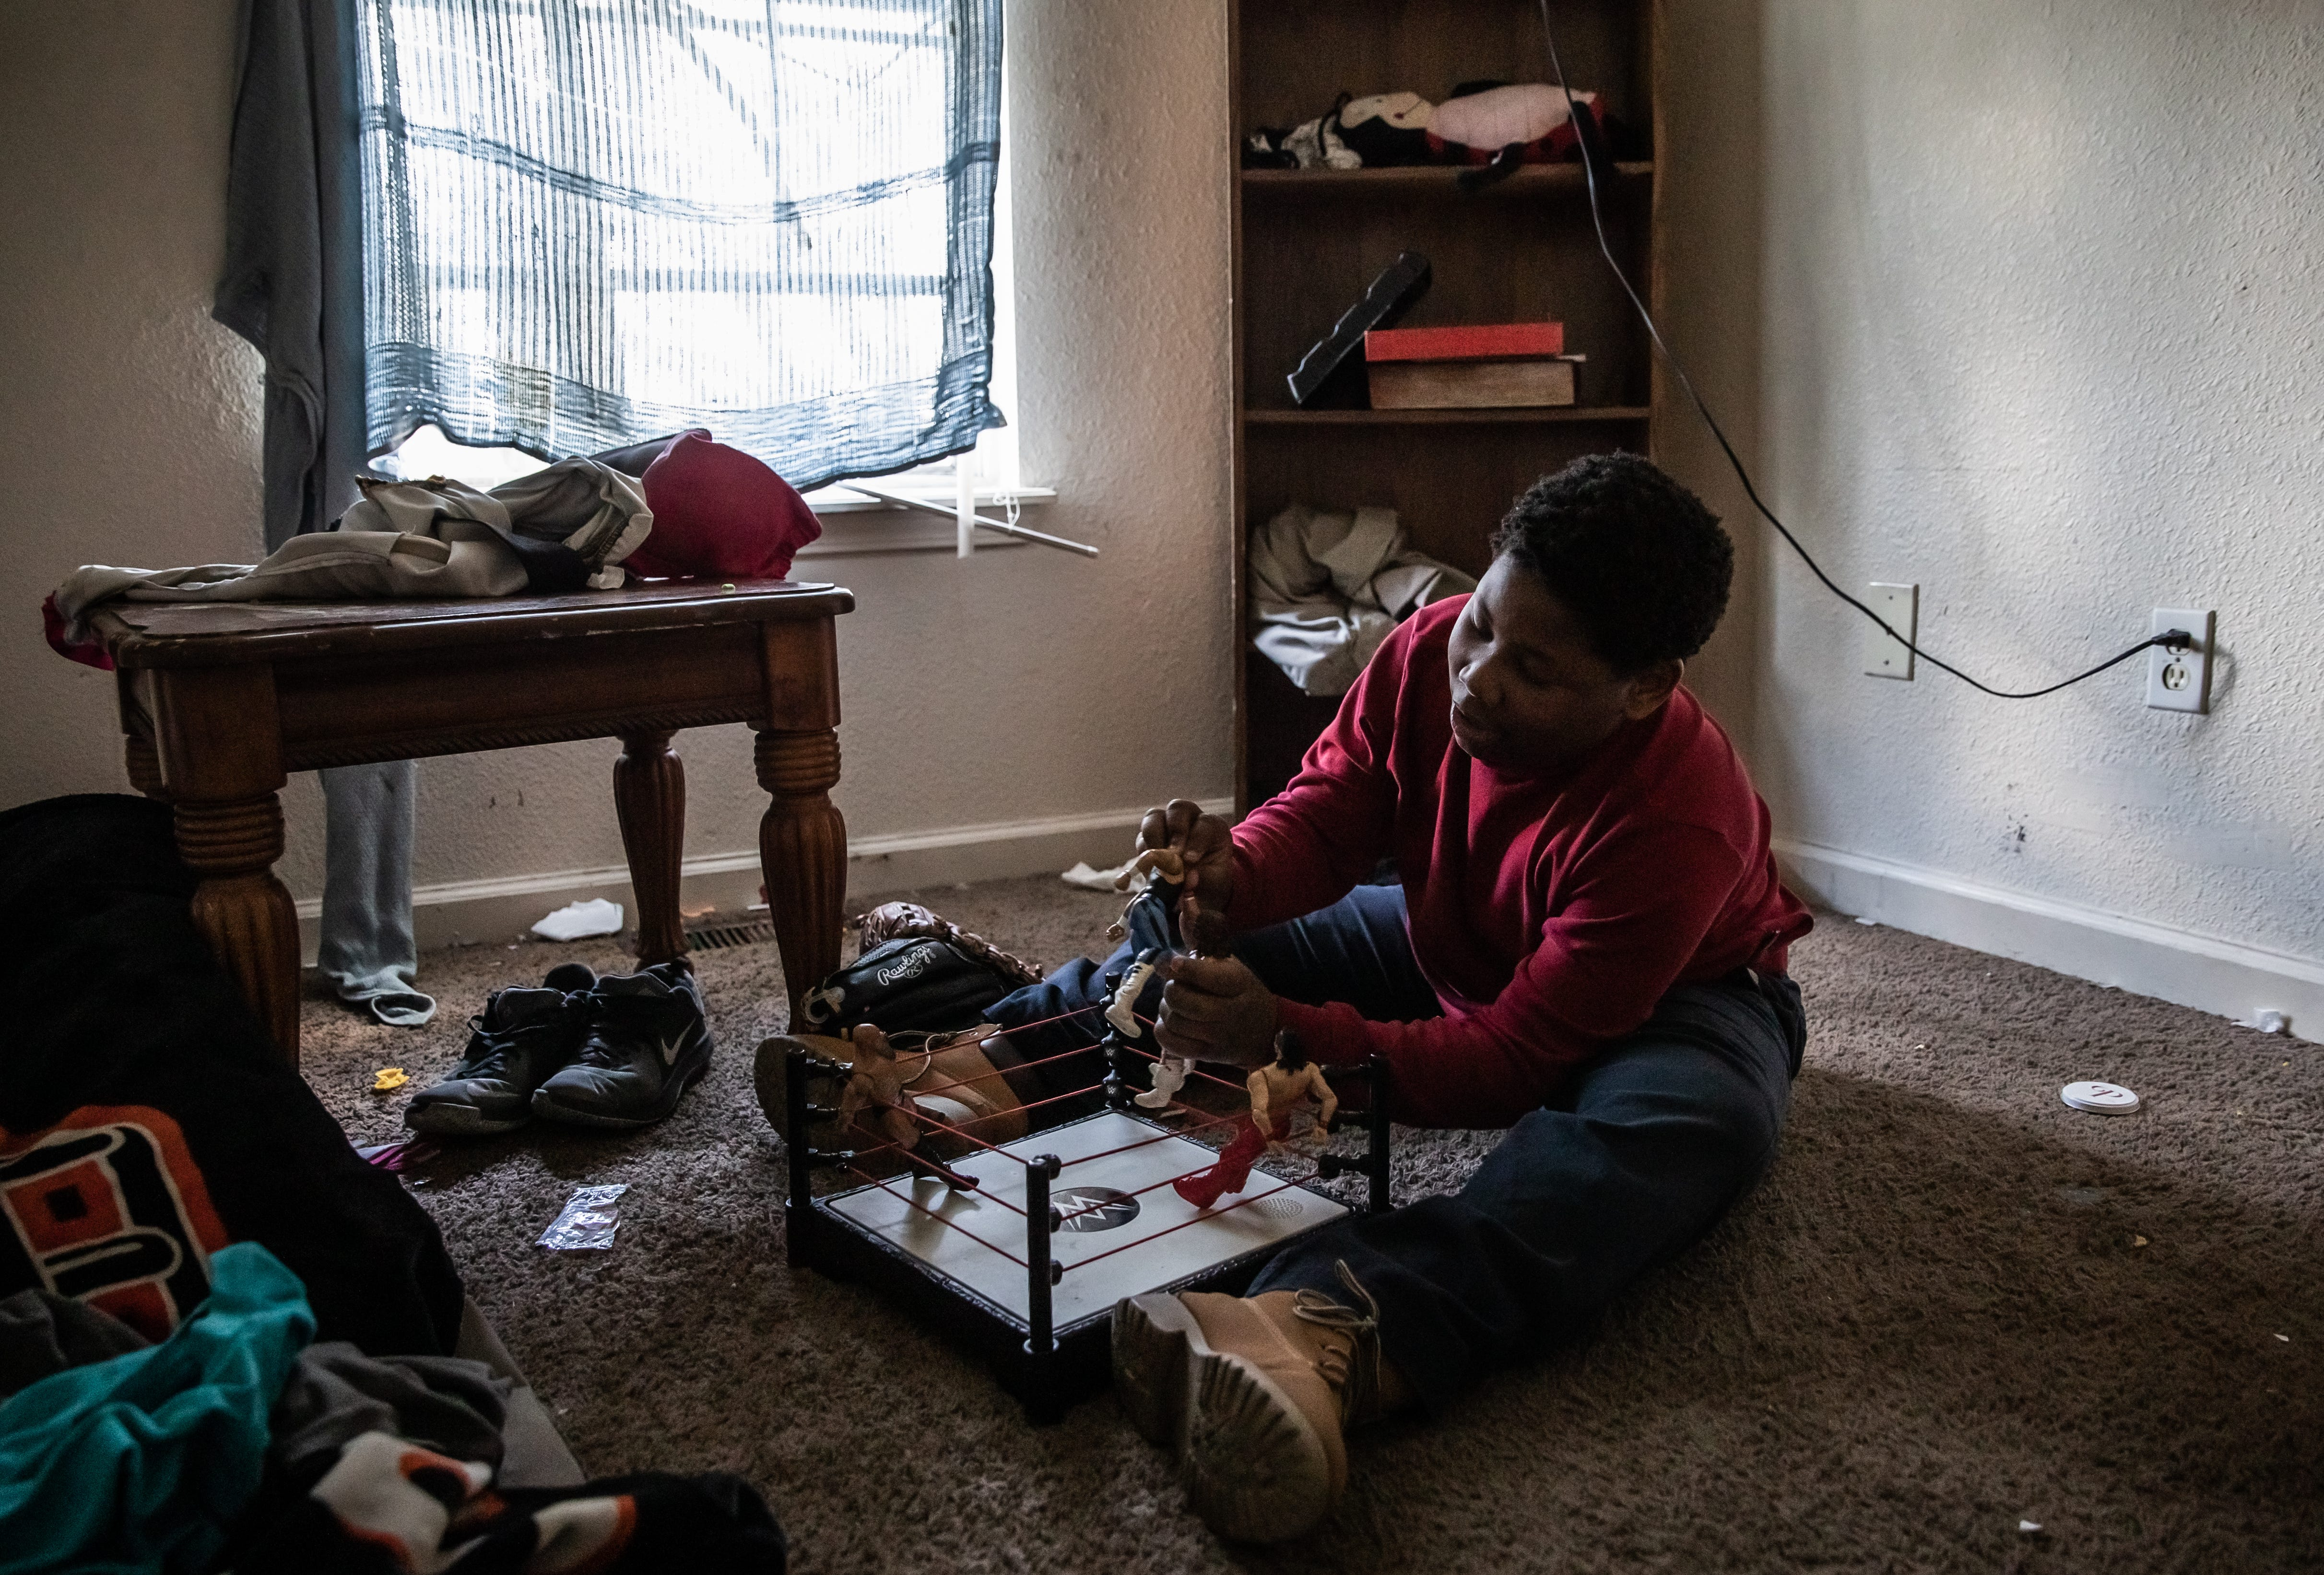 """Antonio O'Neil, 10, an Indy Steelers football player known to his teammates as Mouthpiece, plays with WWE figurines in his room Monday, April 15, 2019. """"I had John Cena but somebody stoled him,"""" he said. """"I'll just have to gets another one."""" O'Neil got his nickname because he always loses his mouthpiece. """"I have bought Antonio, I don't know, 12 or 13 mouthpieces and he never knows where they're at,"""" said Robert O'Neil, Antonio's father. """"He probably doesn't know where it is right now."""""""